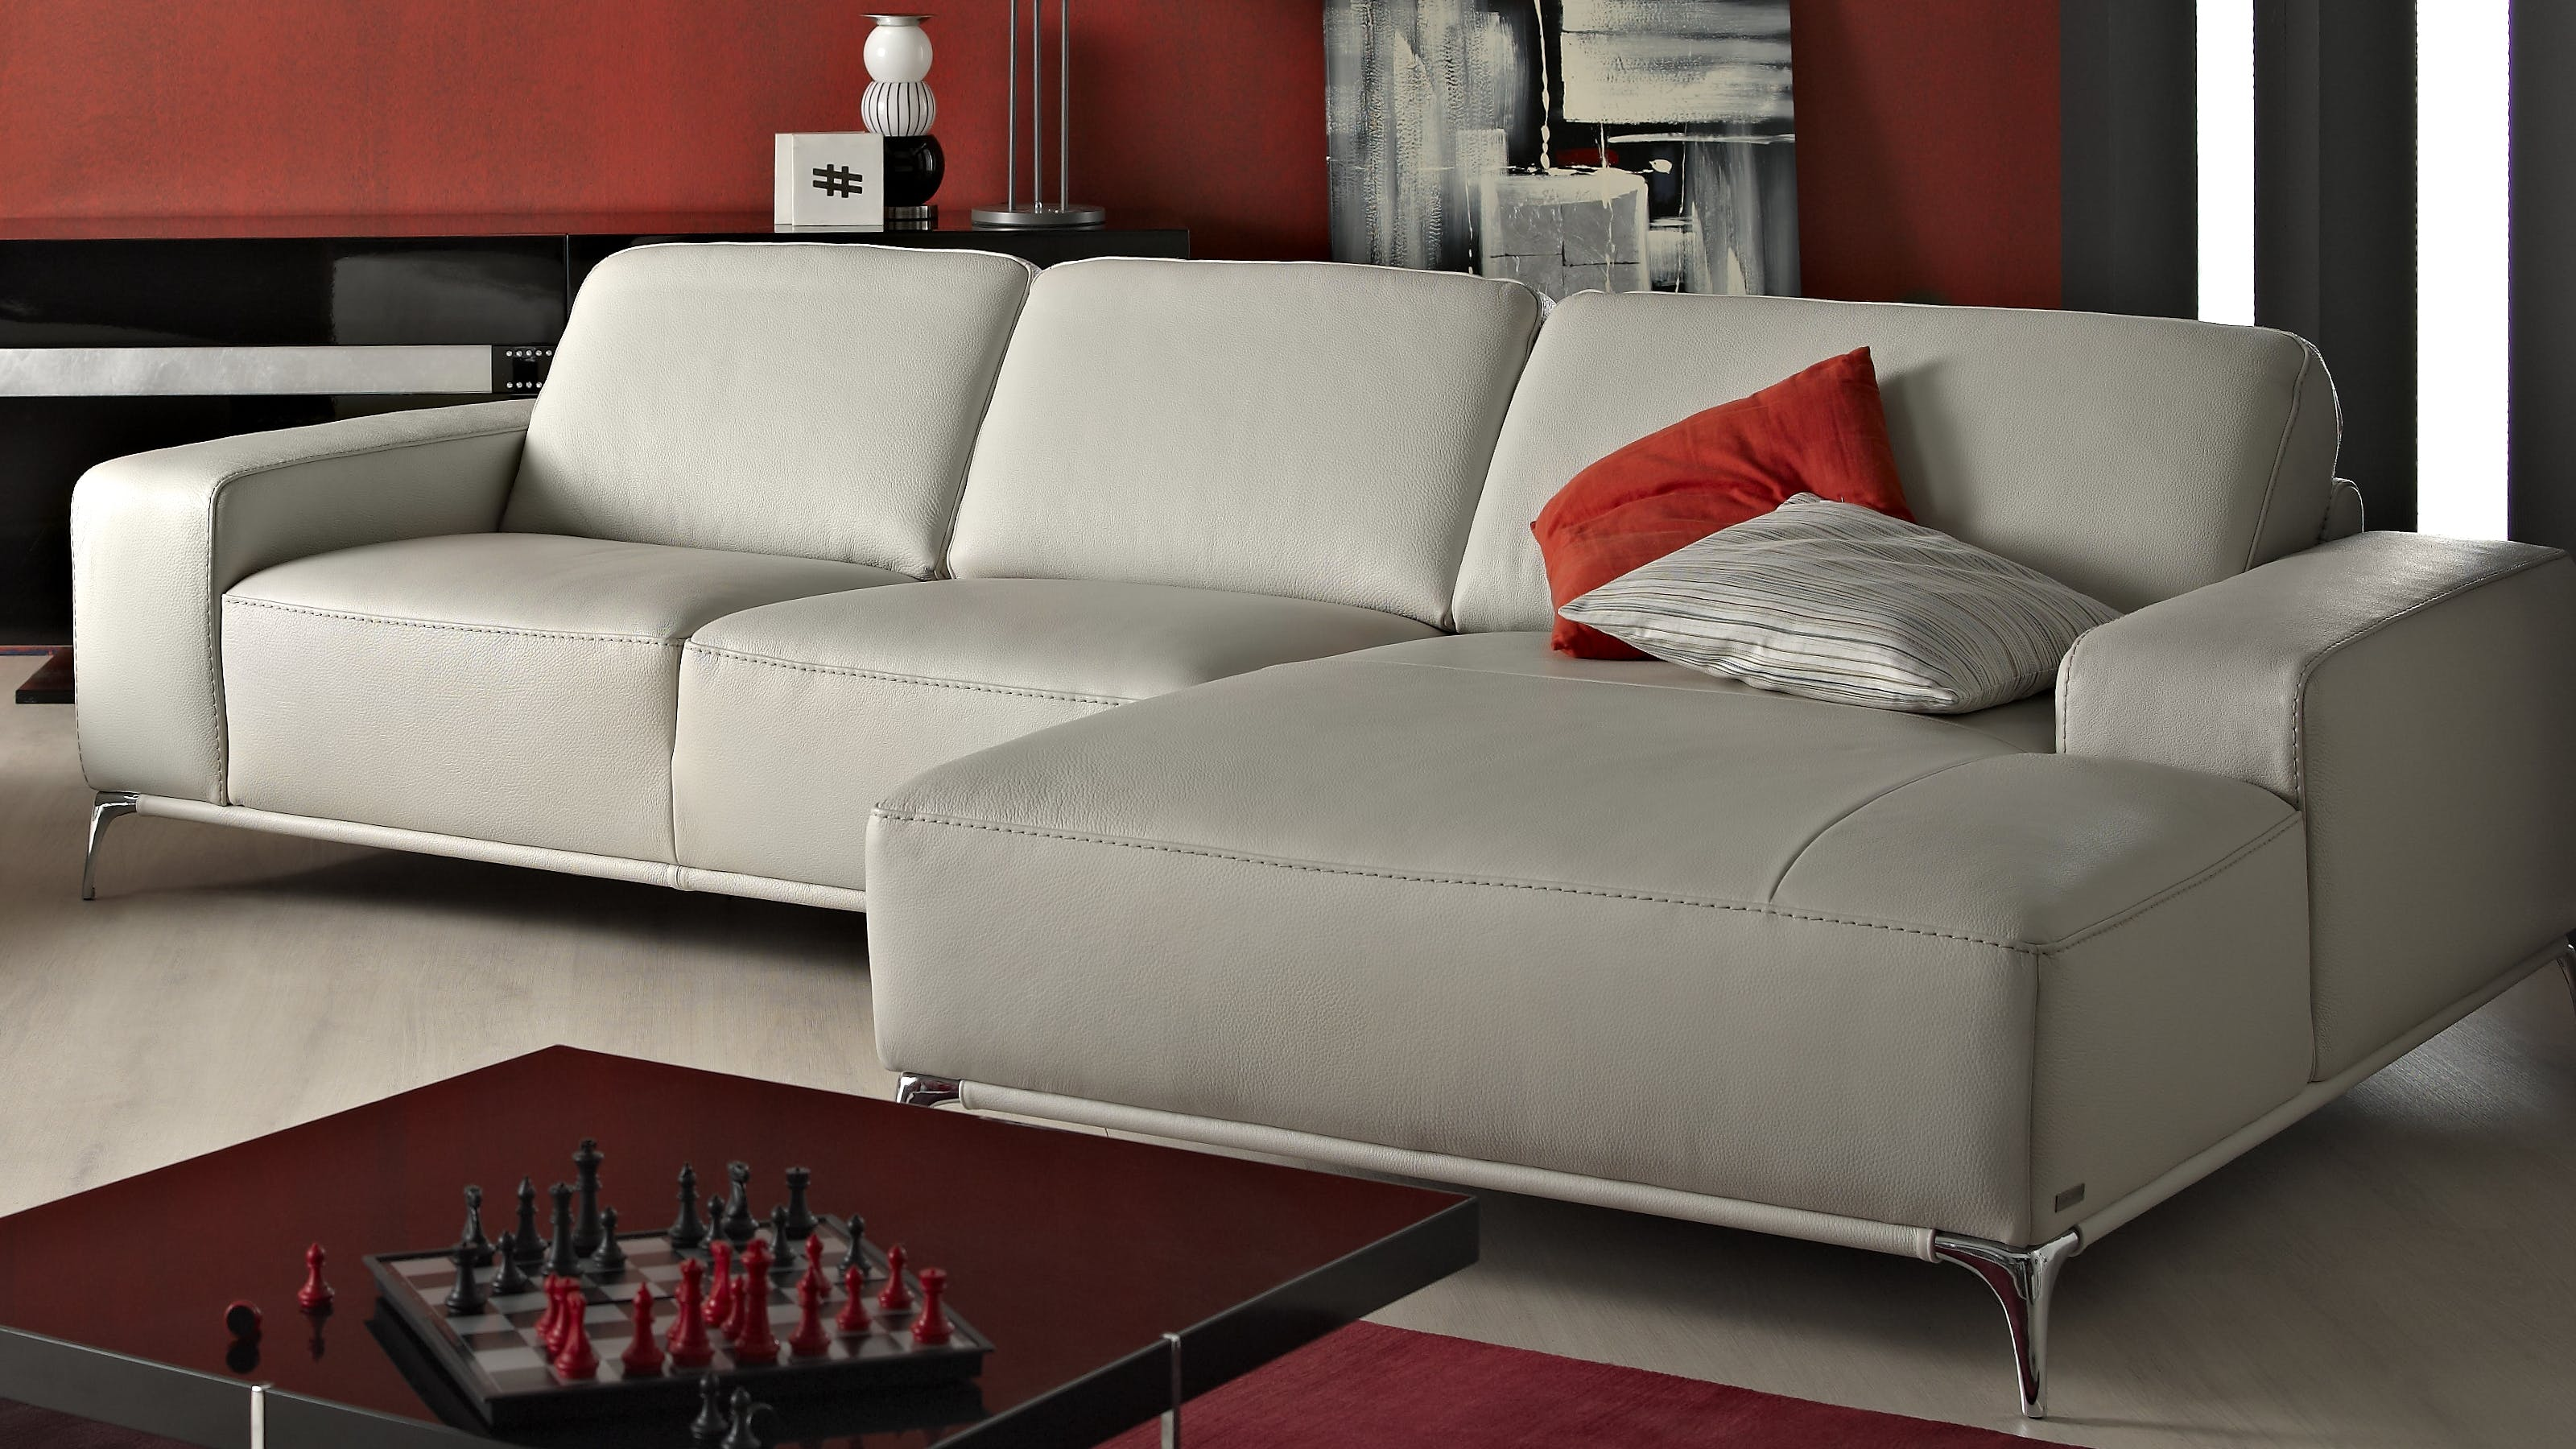 Saporini artemi full leather 2 5 seater sofa with chaise for 2 seater chaise sofa